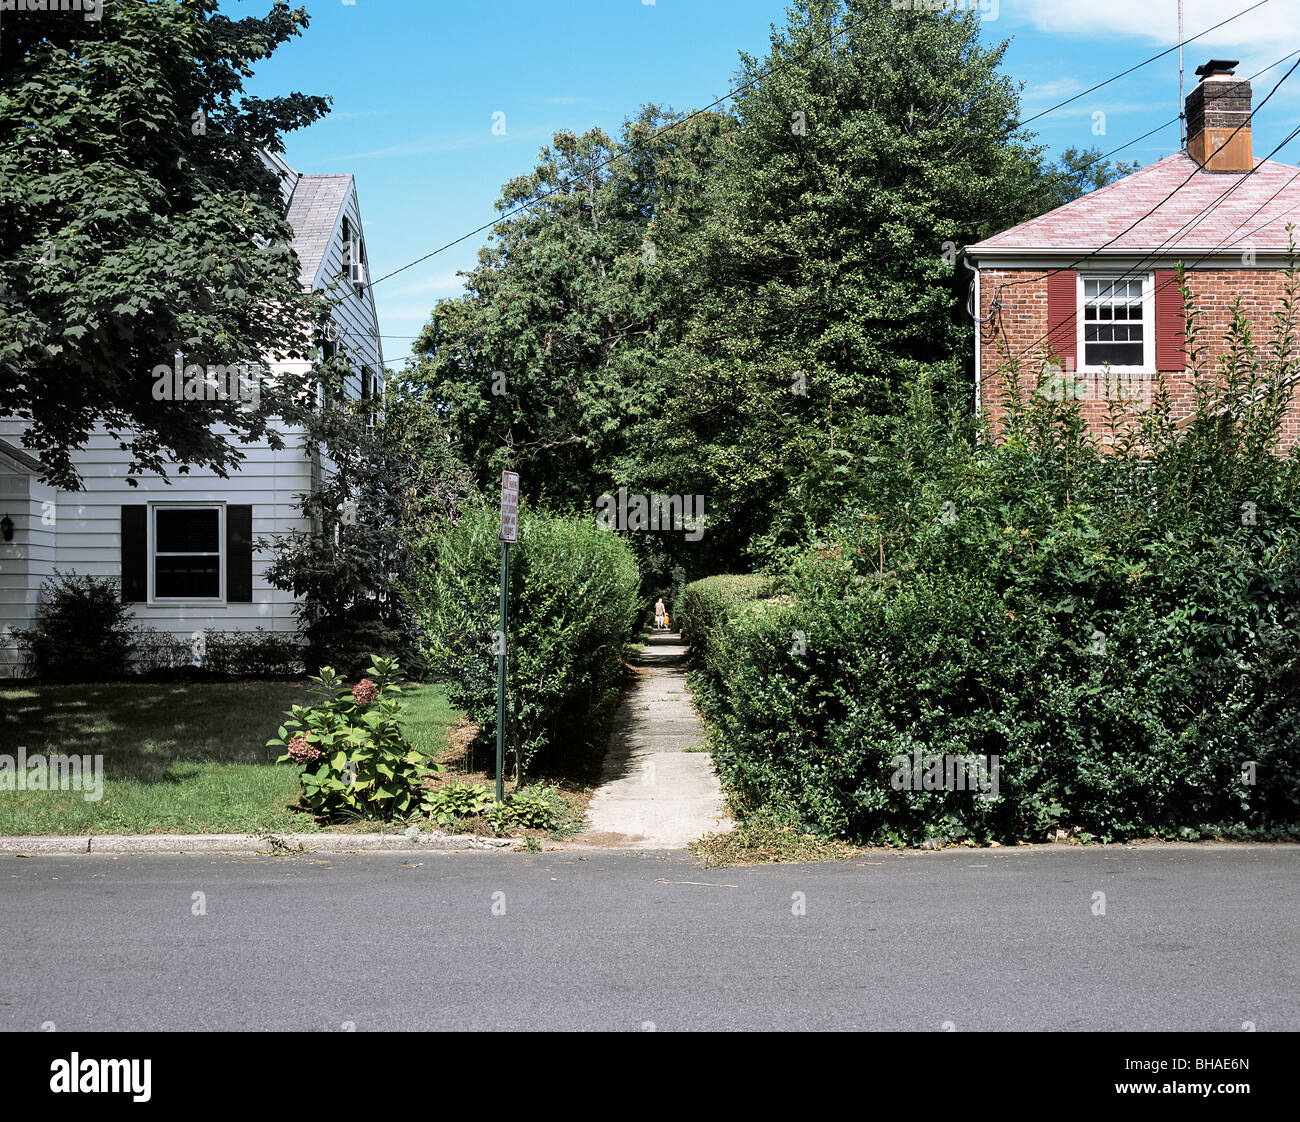 A footpath route between houses in part of the Radburn model suburb, Fair Lawn, New Jersey, USA - Stock Image